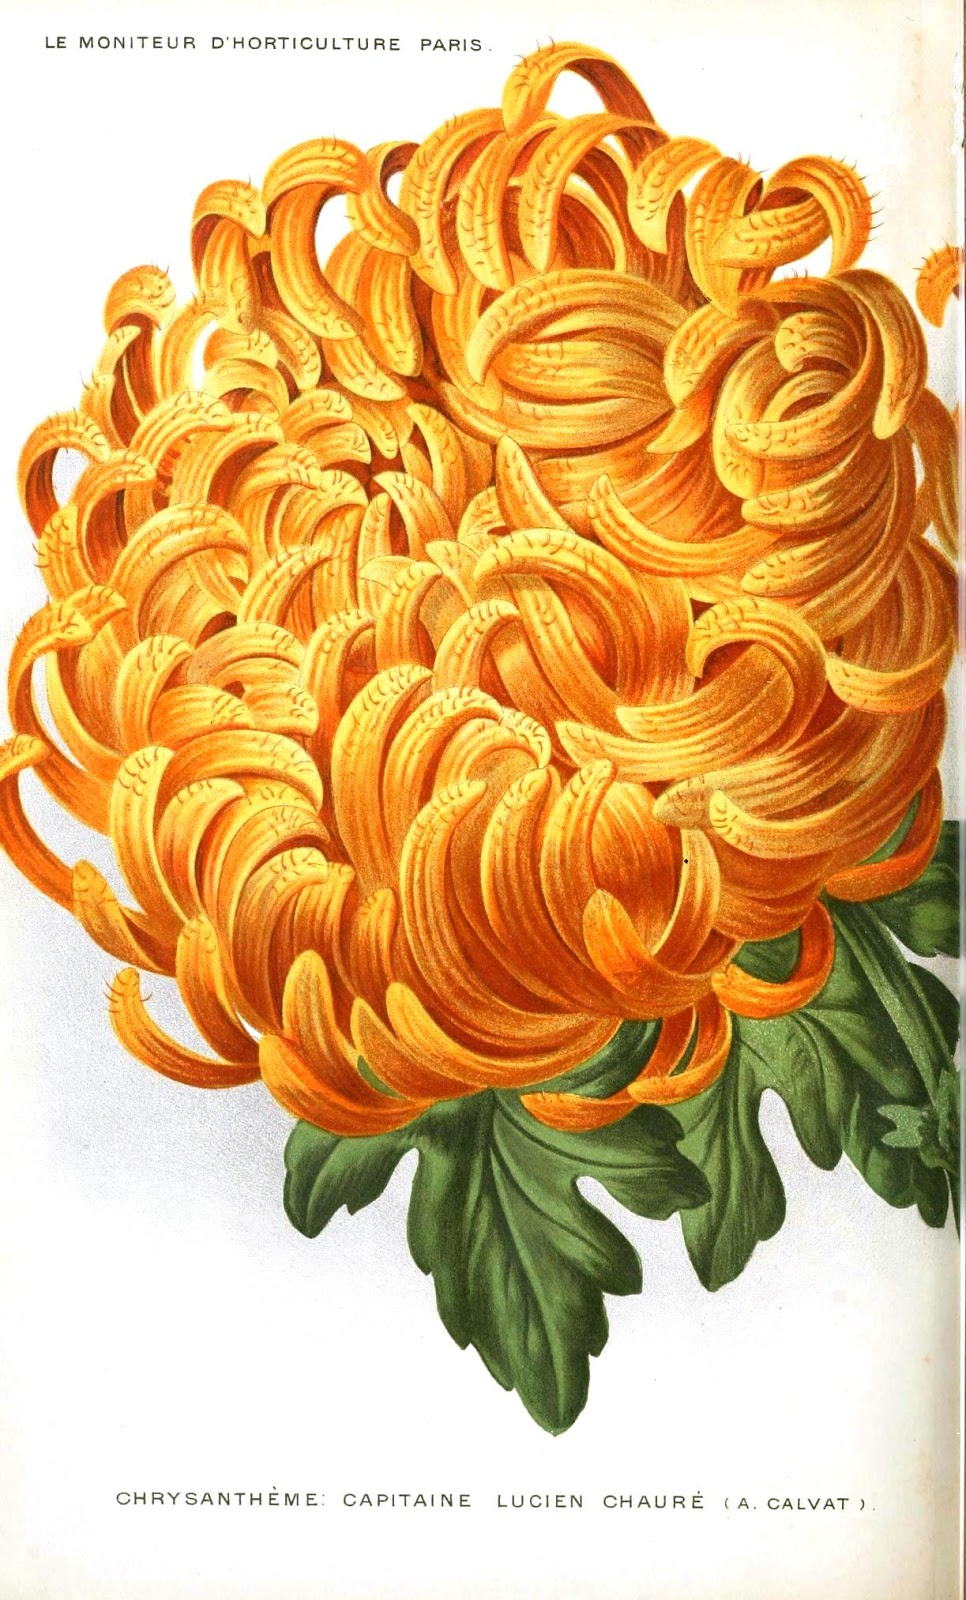 Nostalgic summer happy birthdayvember the chrysanthemum is your birth flower it is one of the most honored flowers in asia in japan chrysanthemums called kikus are exchanged between izmirmasajfo